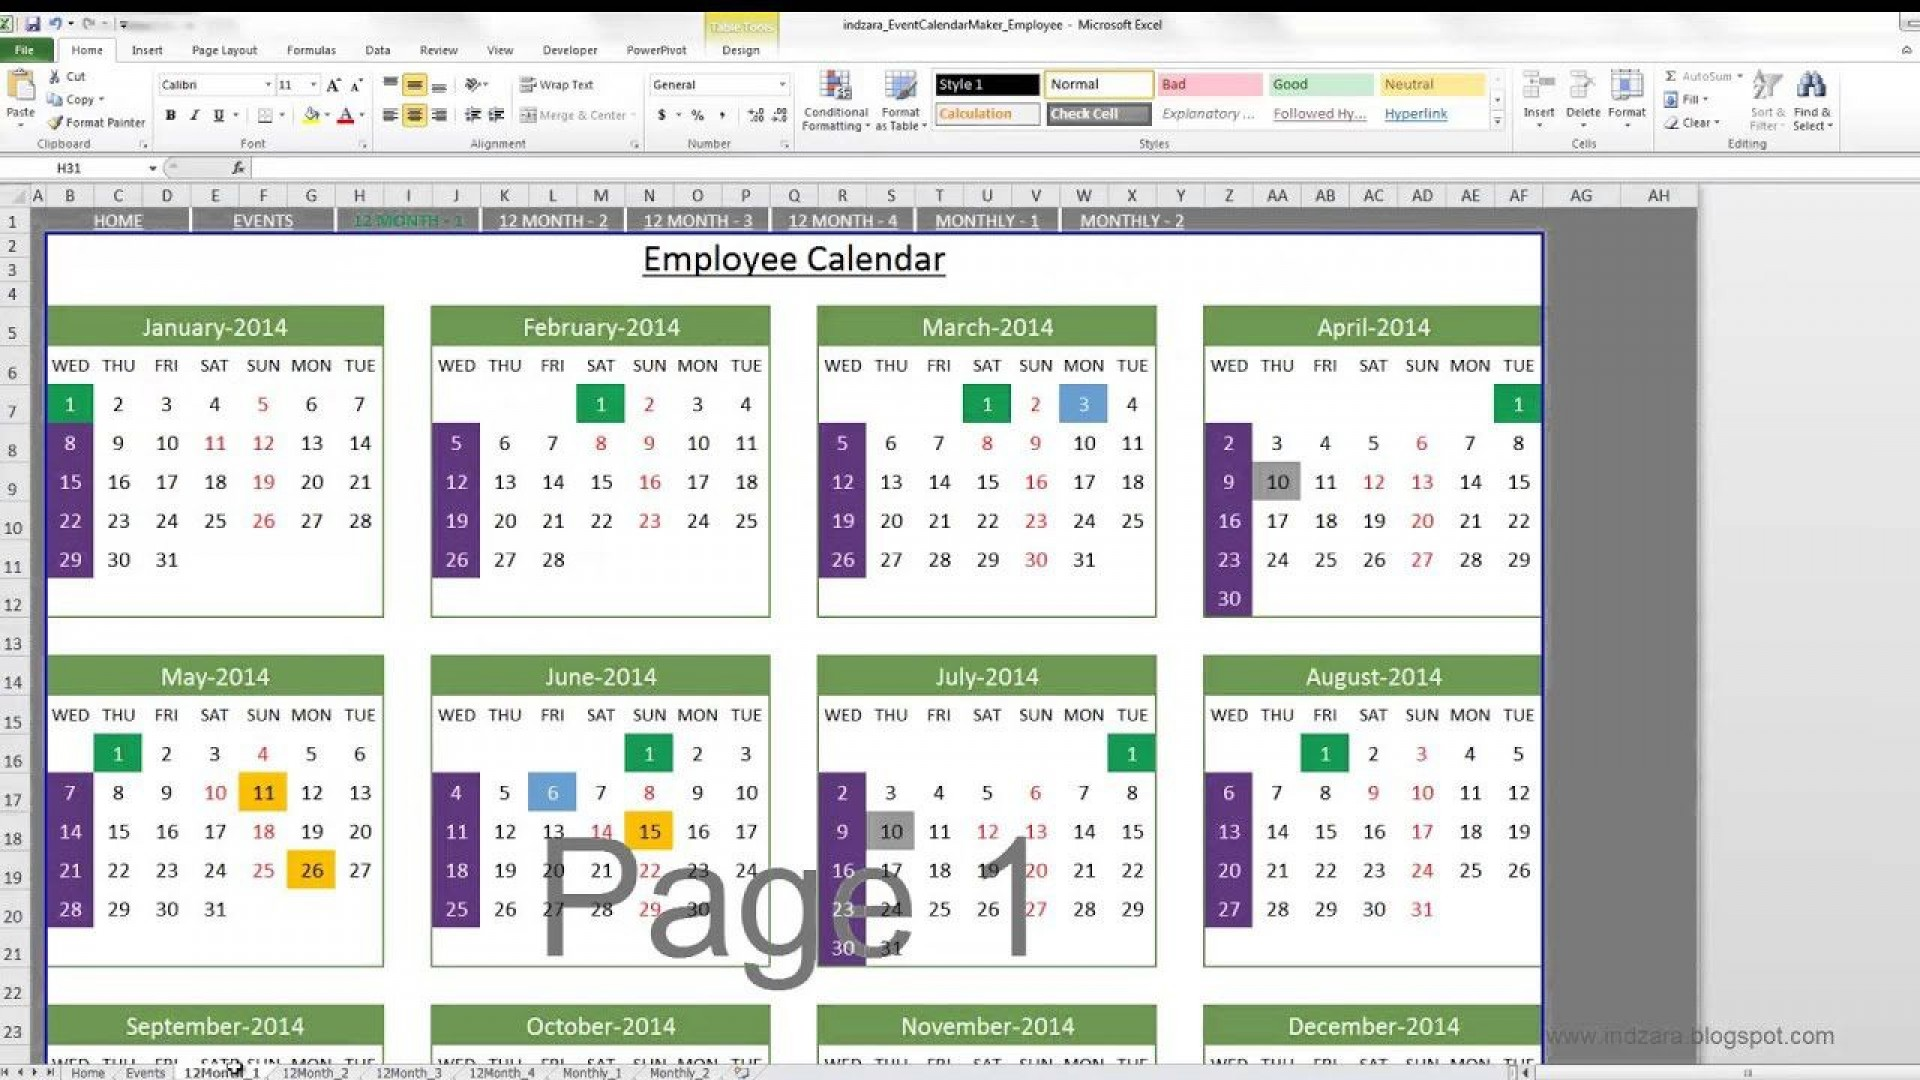 004 Sensational Microsoft Excel Calendar Template Inspiration  Office 2013 M Yearly 20191920